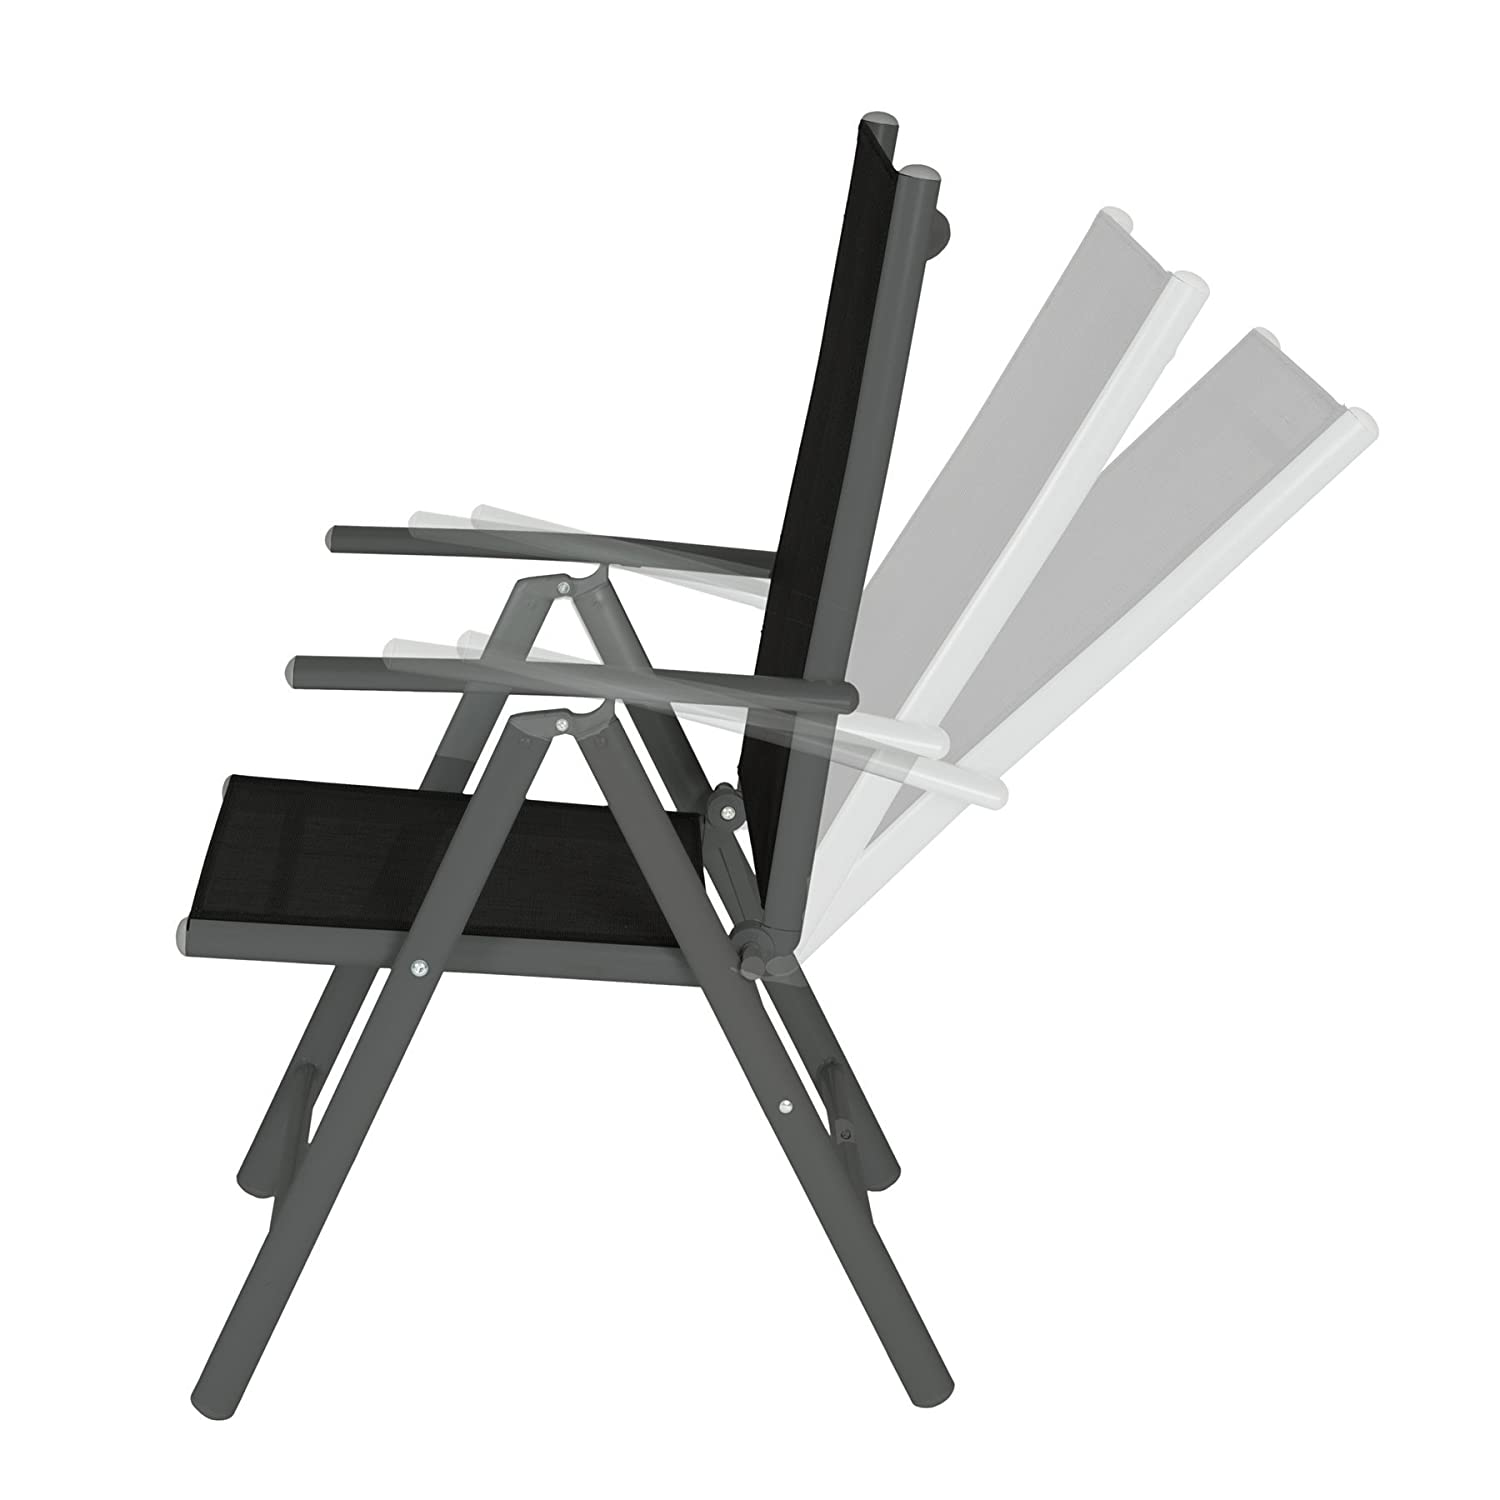 TecTake Aluminium folding garden chairs set adjustable with